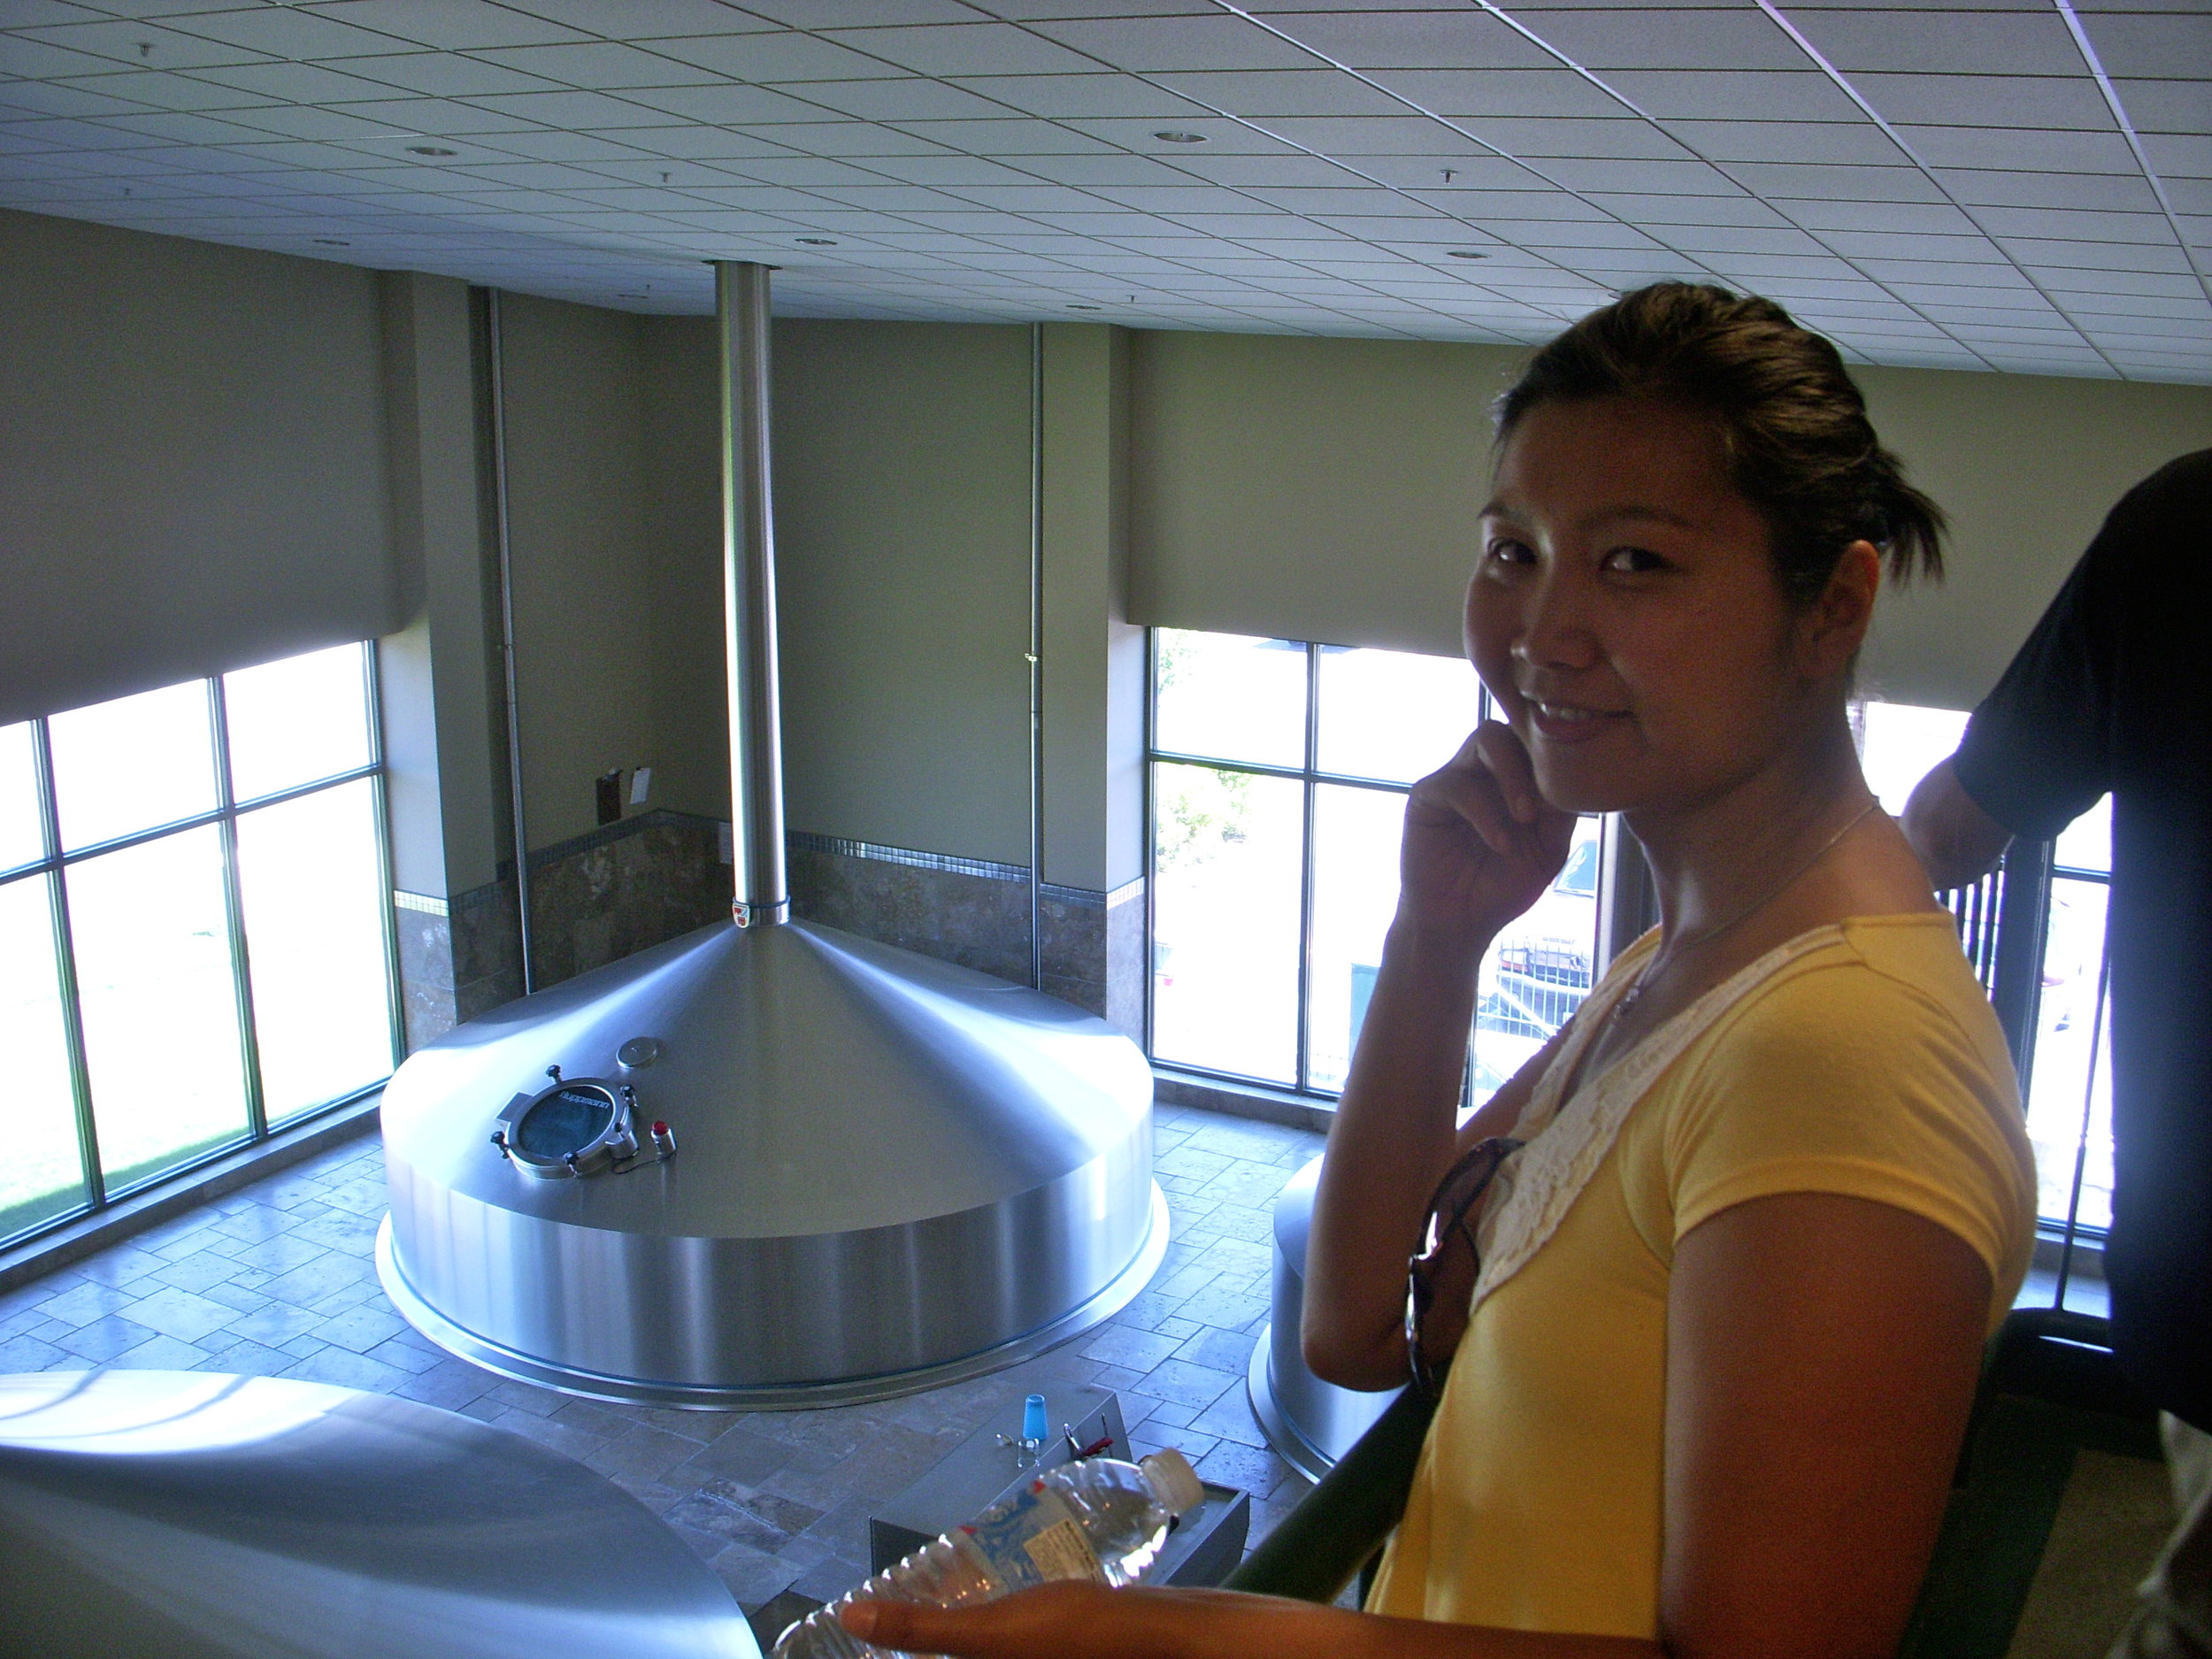 Mai hates brewery tours